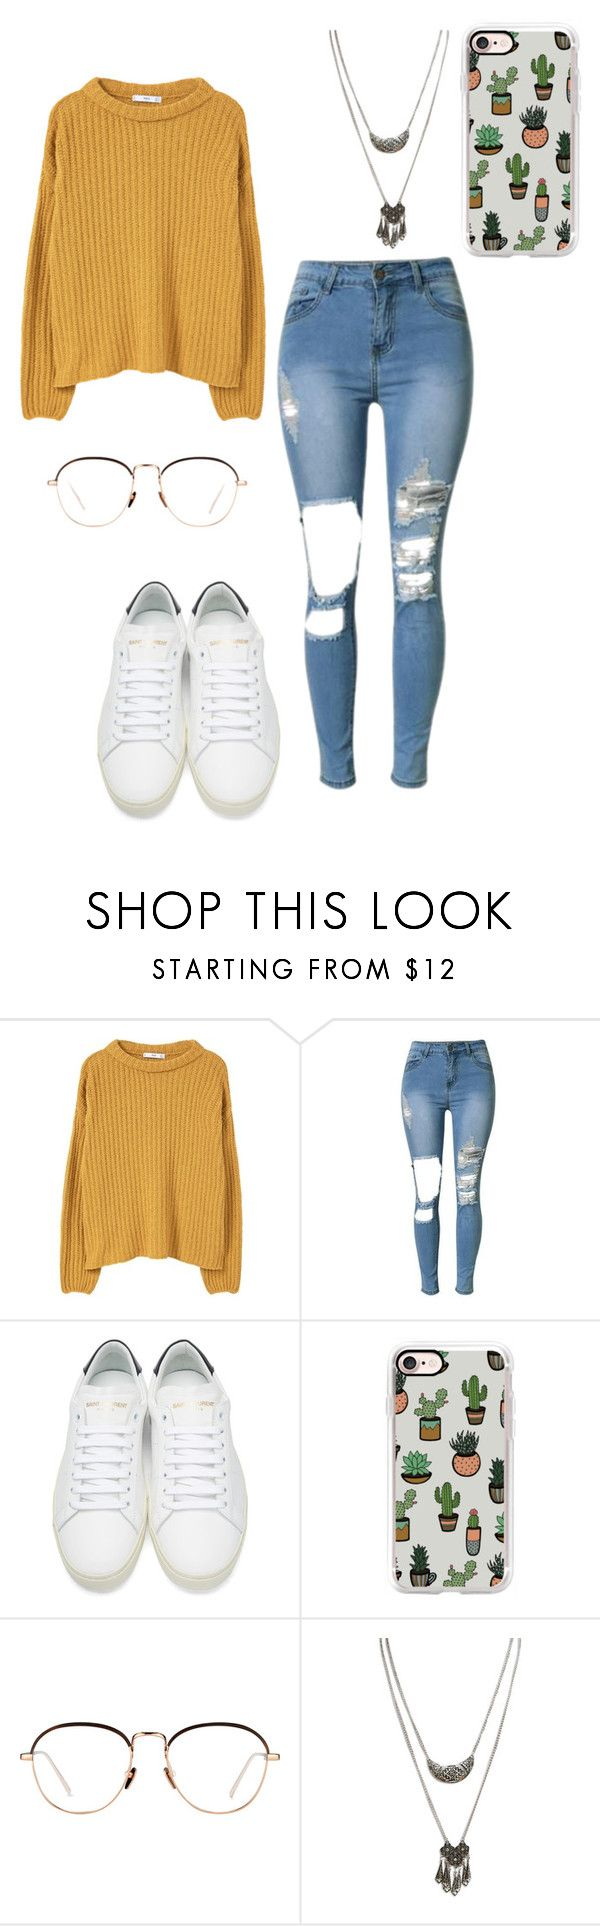 """""""plants r friends"""" by motelmoney ❤ liked on Polyvore featuring MANGO, Yves Saint Laurent, Casetify, Linda Farrow and Wet Seal"""